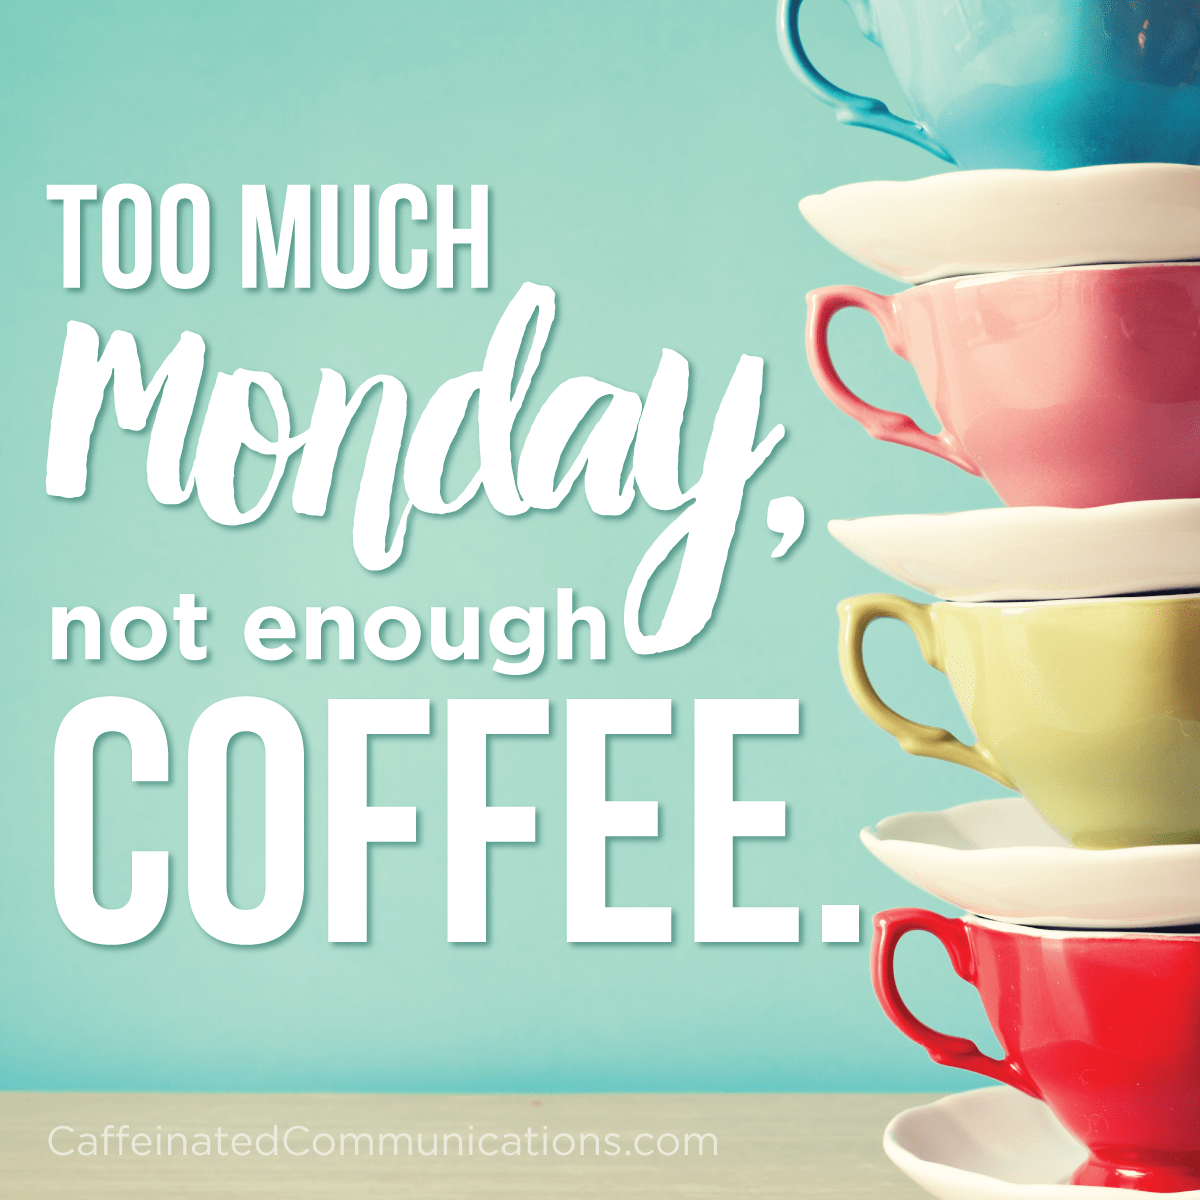 Visual Content: Too much Monday, not enough coffee